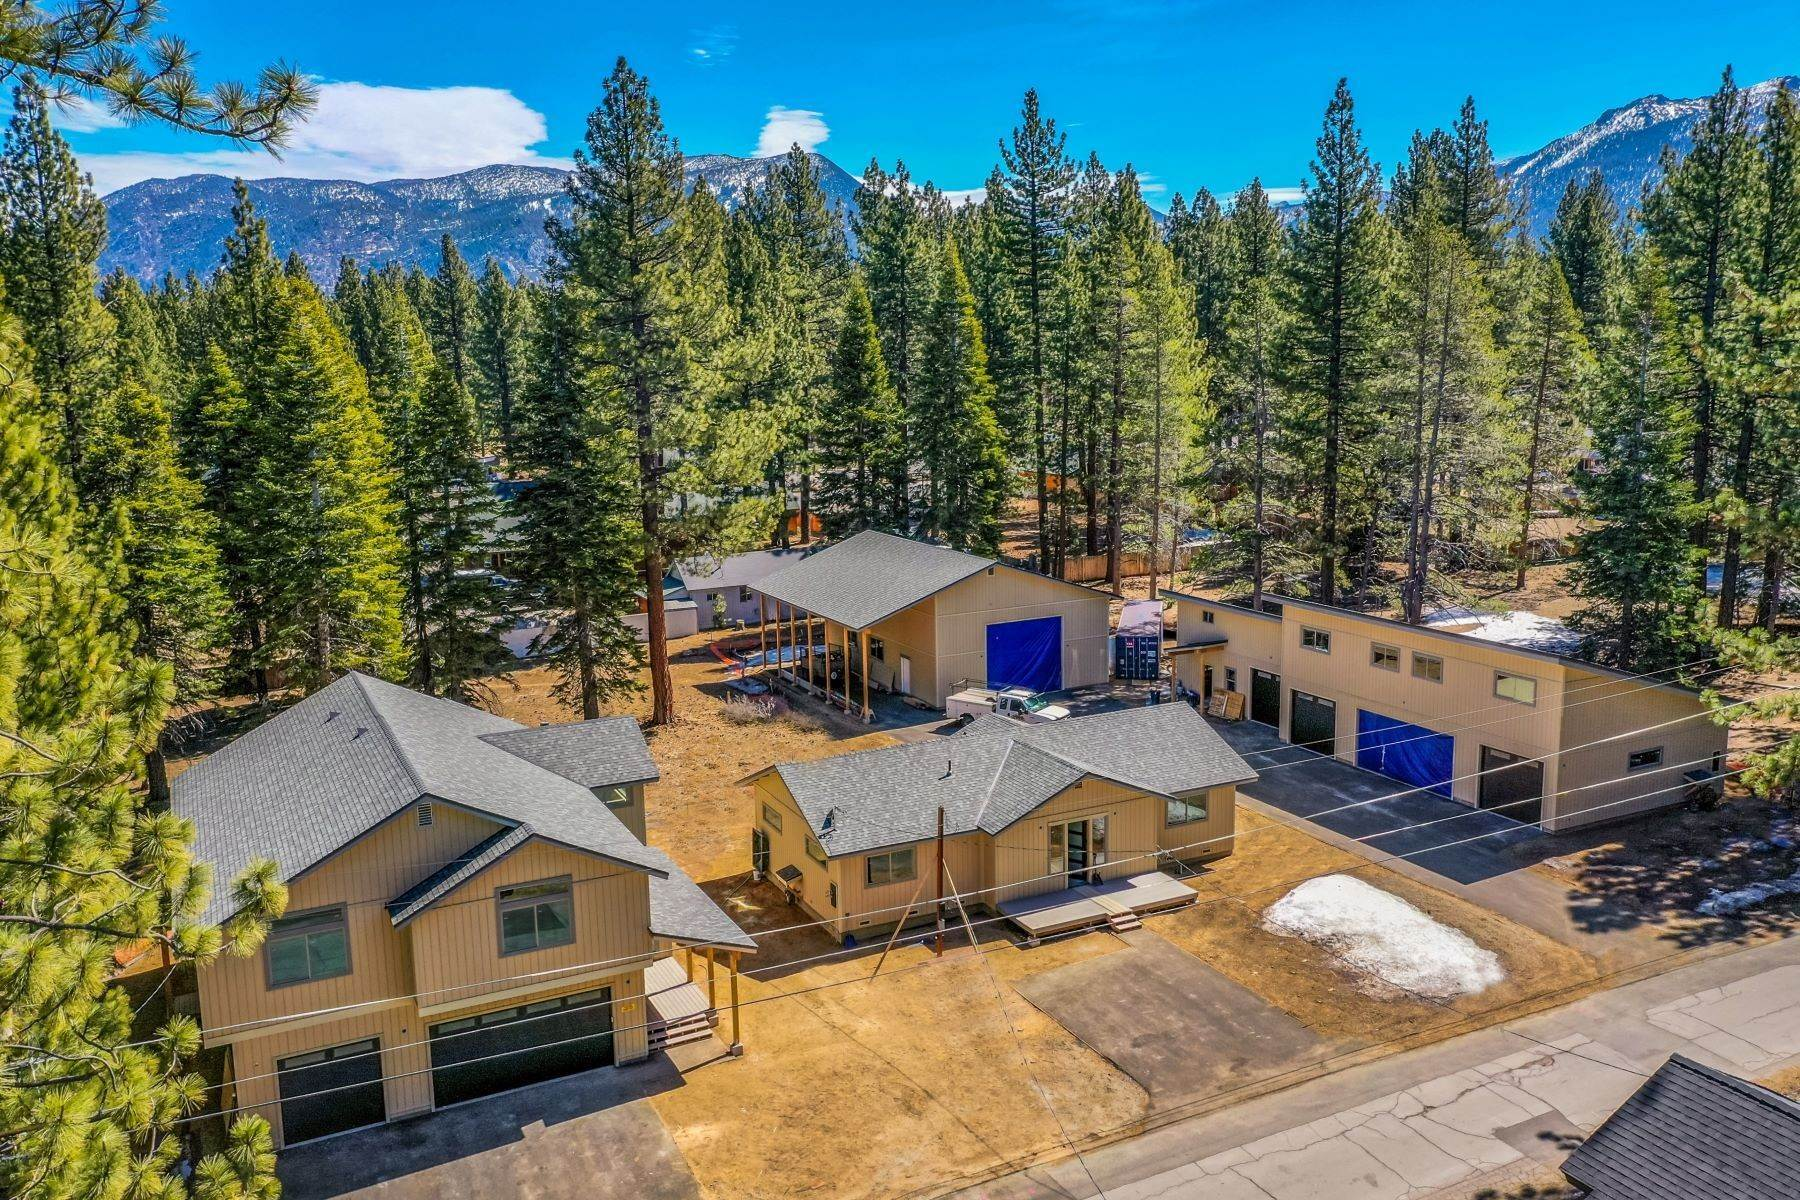 Single Family Homes for Active at Unique Tahoe Opportunity. 1149 Bonanza Ave South Lake Tahoe, California 96150 United States